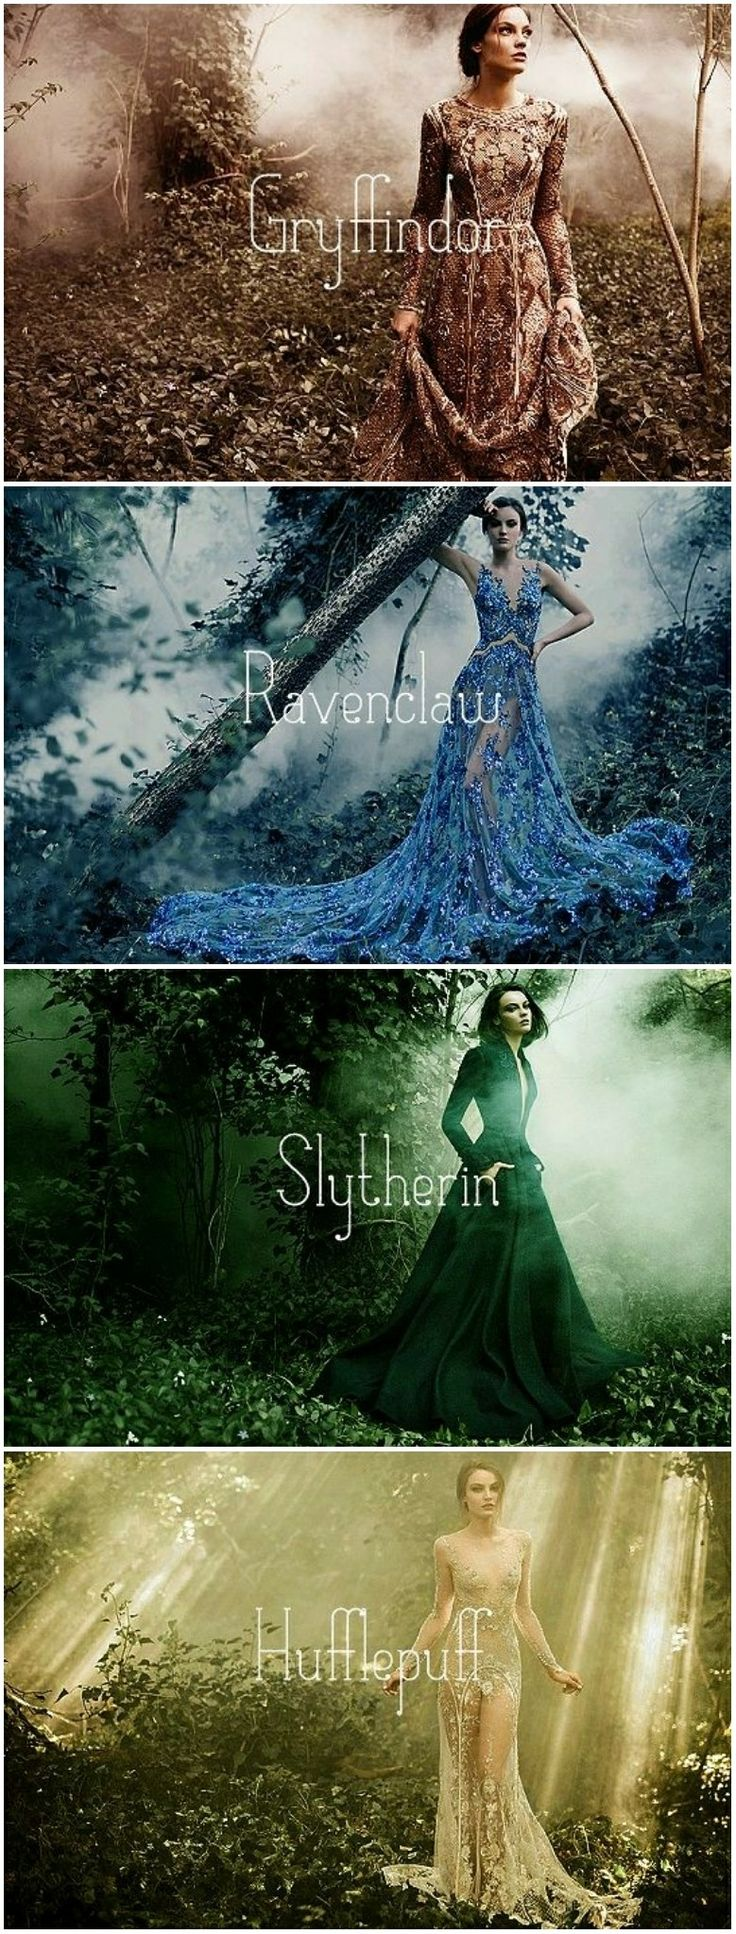 Mode Interpretation der Hogwarts Häuser - wie würde sich eine Prinzessin dieses Hauses kleiden? Sie sind alle wunderschön! Wer wärst du? Hogwarts Fashion Outfits / Slytherin Dress / Gryffindor Dress / Hufflepuff Dress / Ravenclaw Dress #hogwartsfashion #harrypotterfashion | Stylefeed